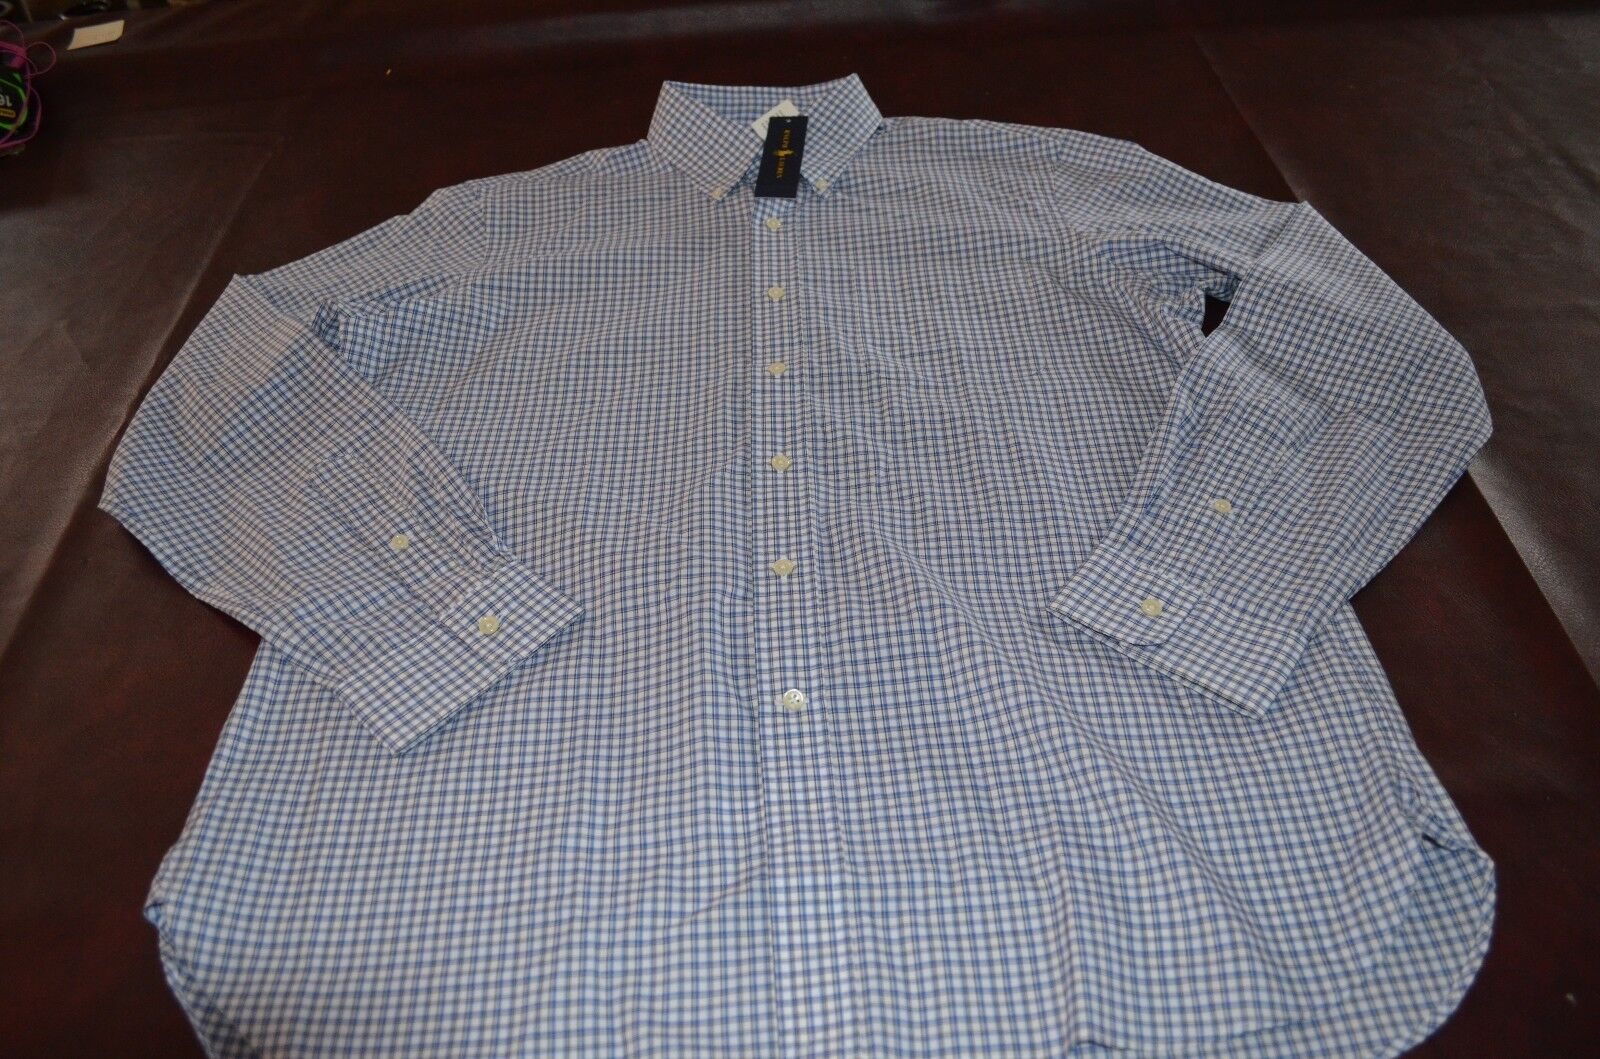 NWT MSRP 145 Ralph Lauren  Herren Dress Shirt 120's 2-ply Cotton Größe Large Blau